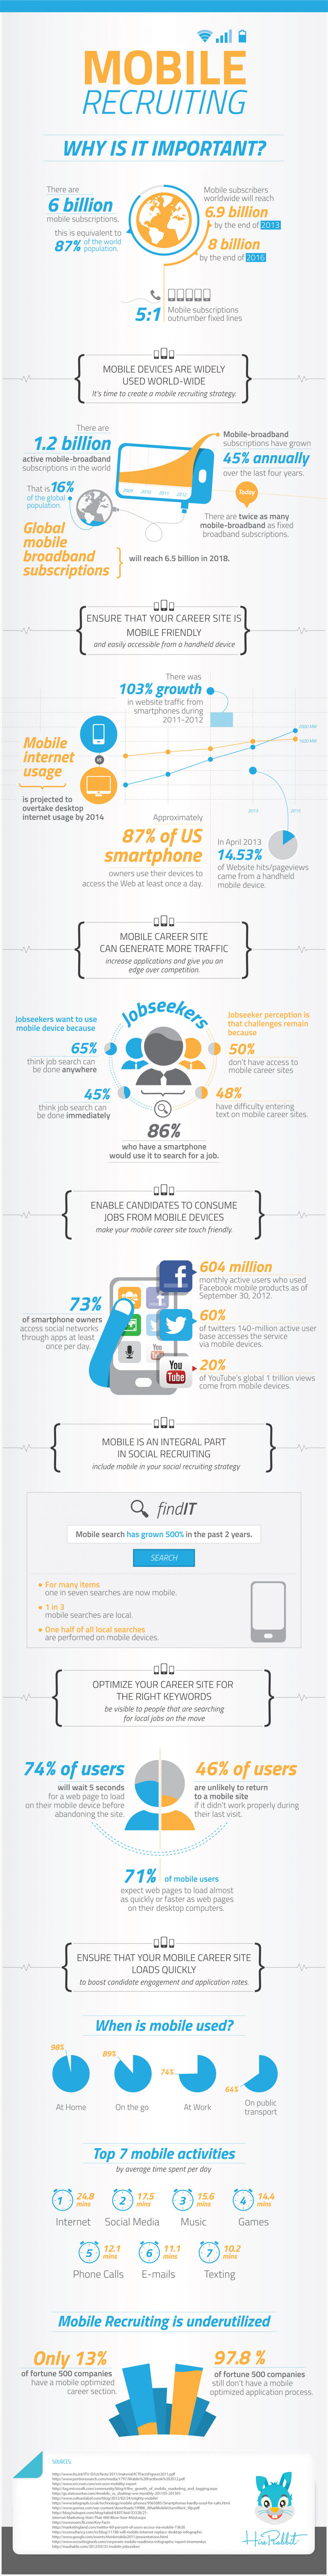 Importance of Mobile Recruiting Infographic